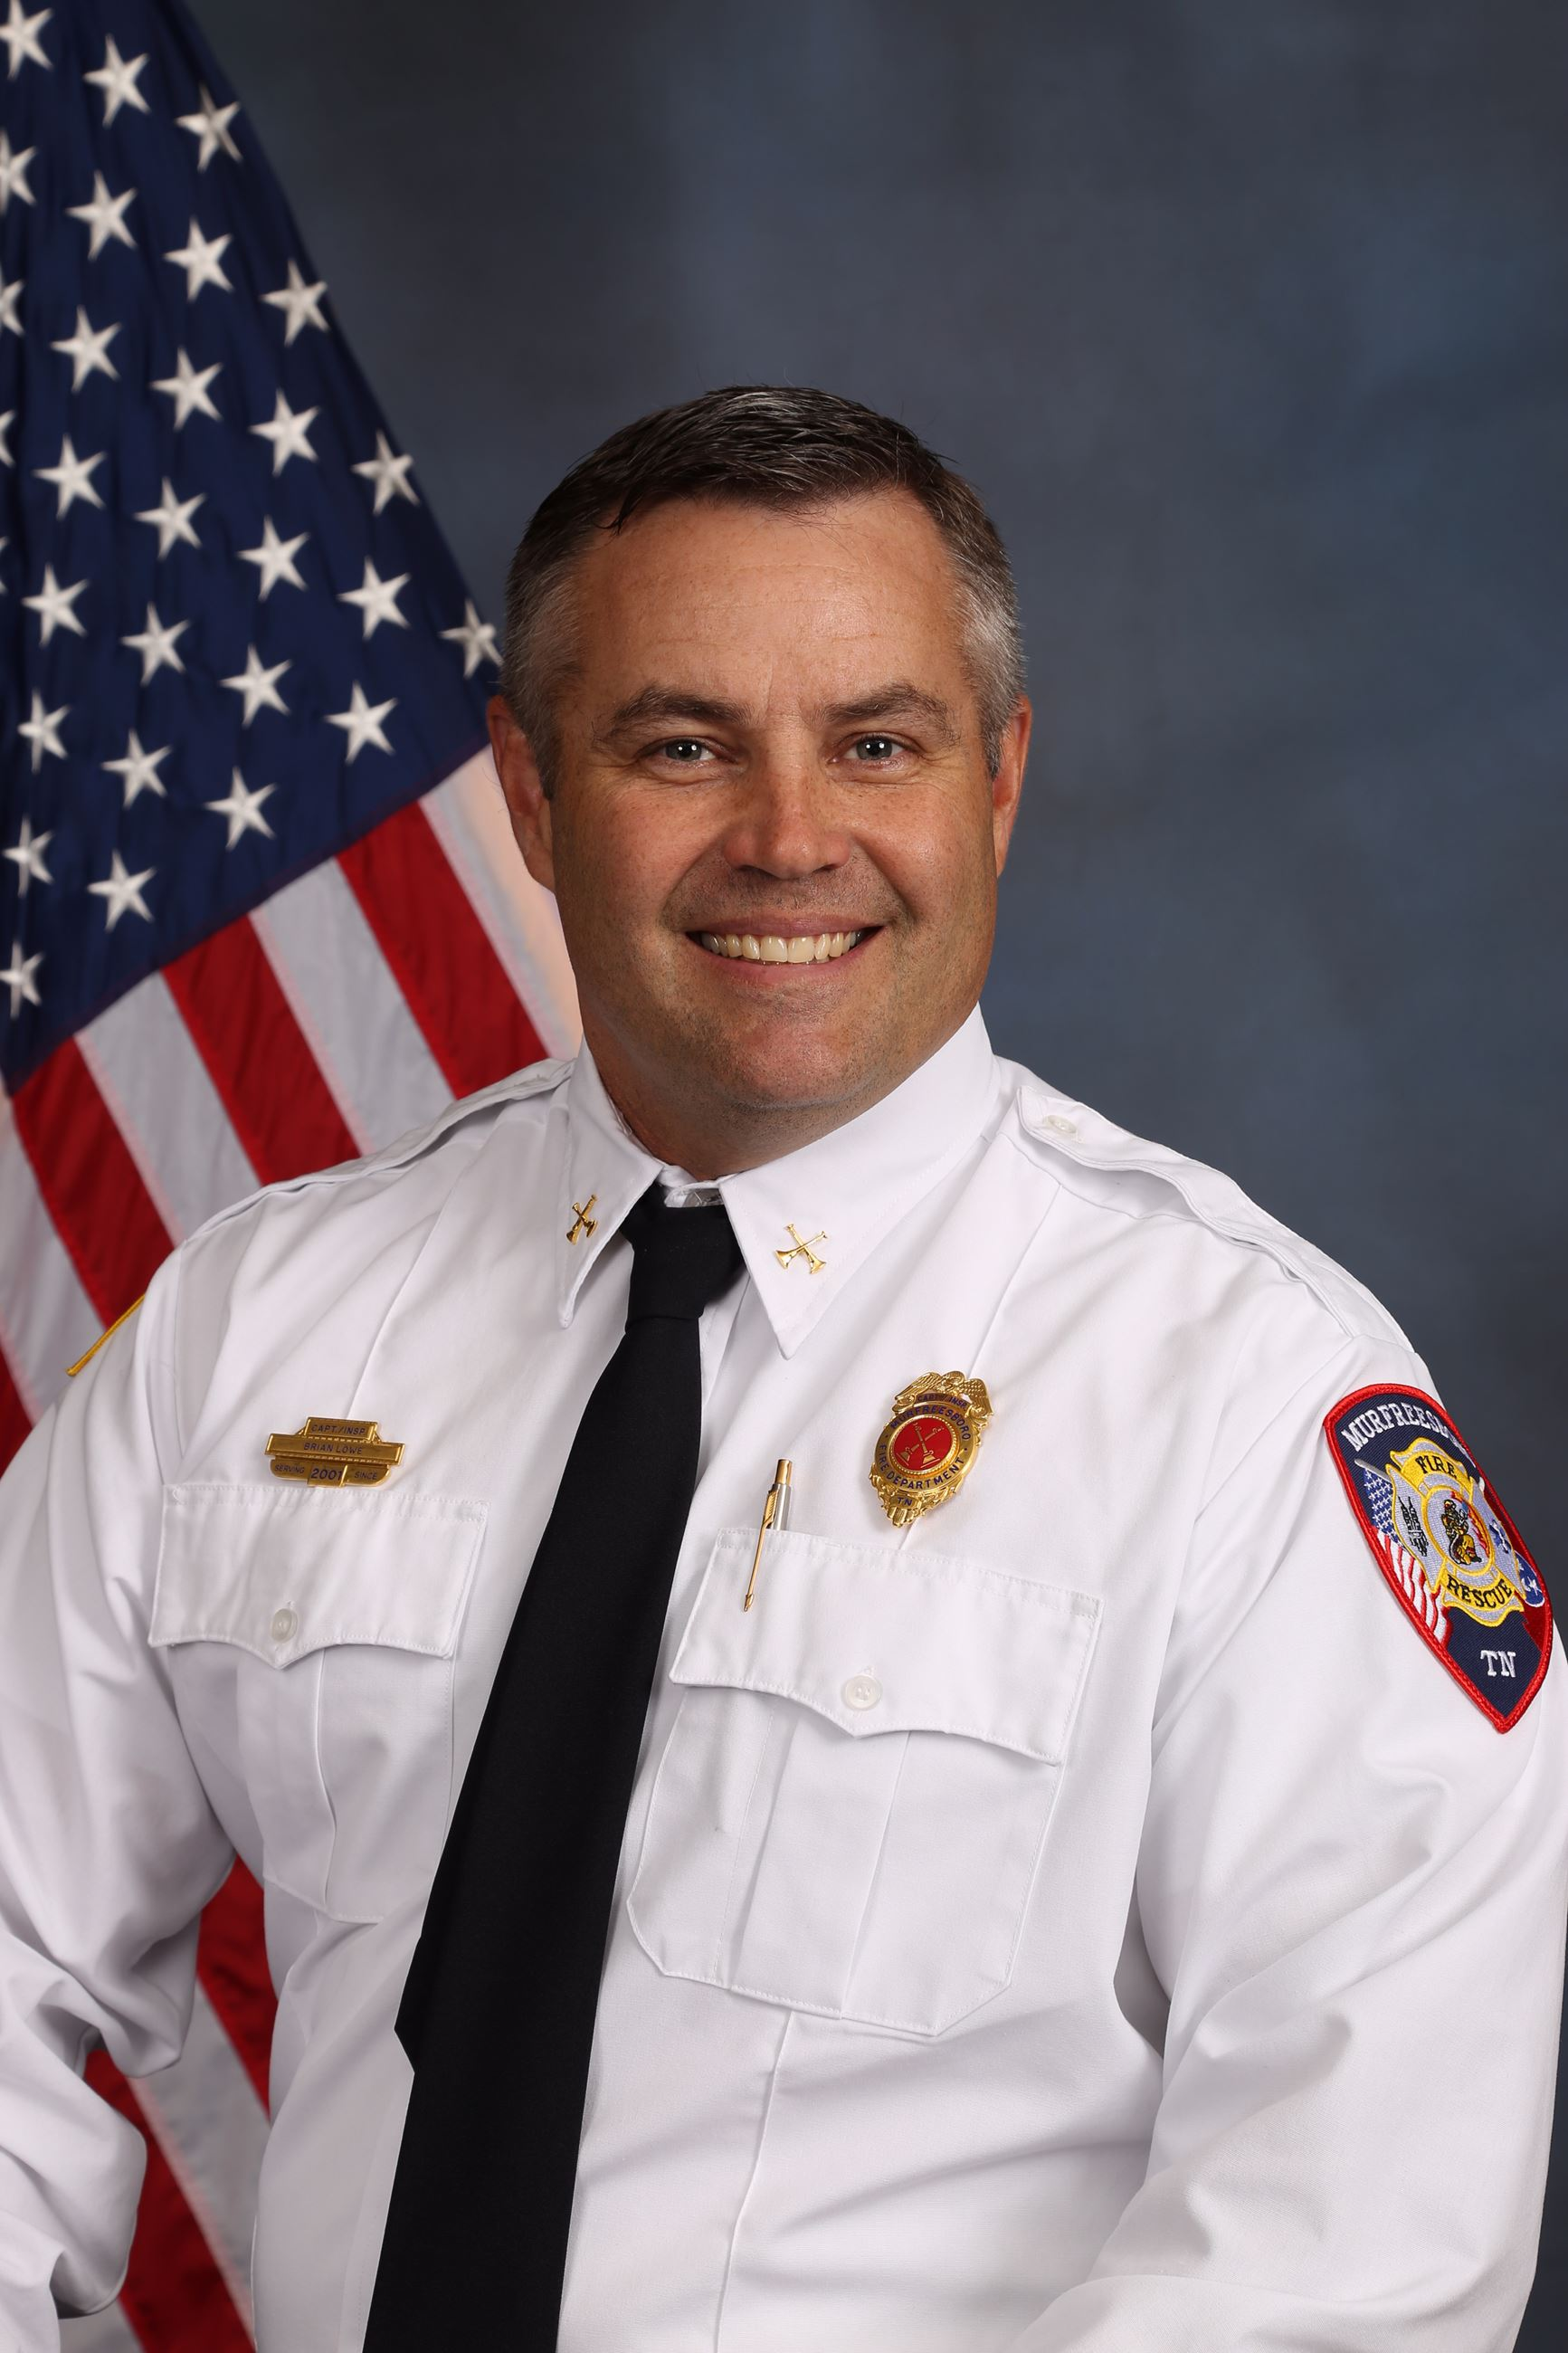 MFRD ASSISTANT CHIEF BRIAN LOWE